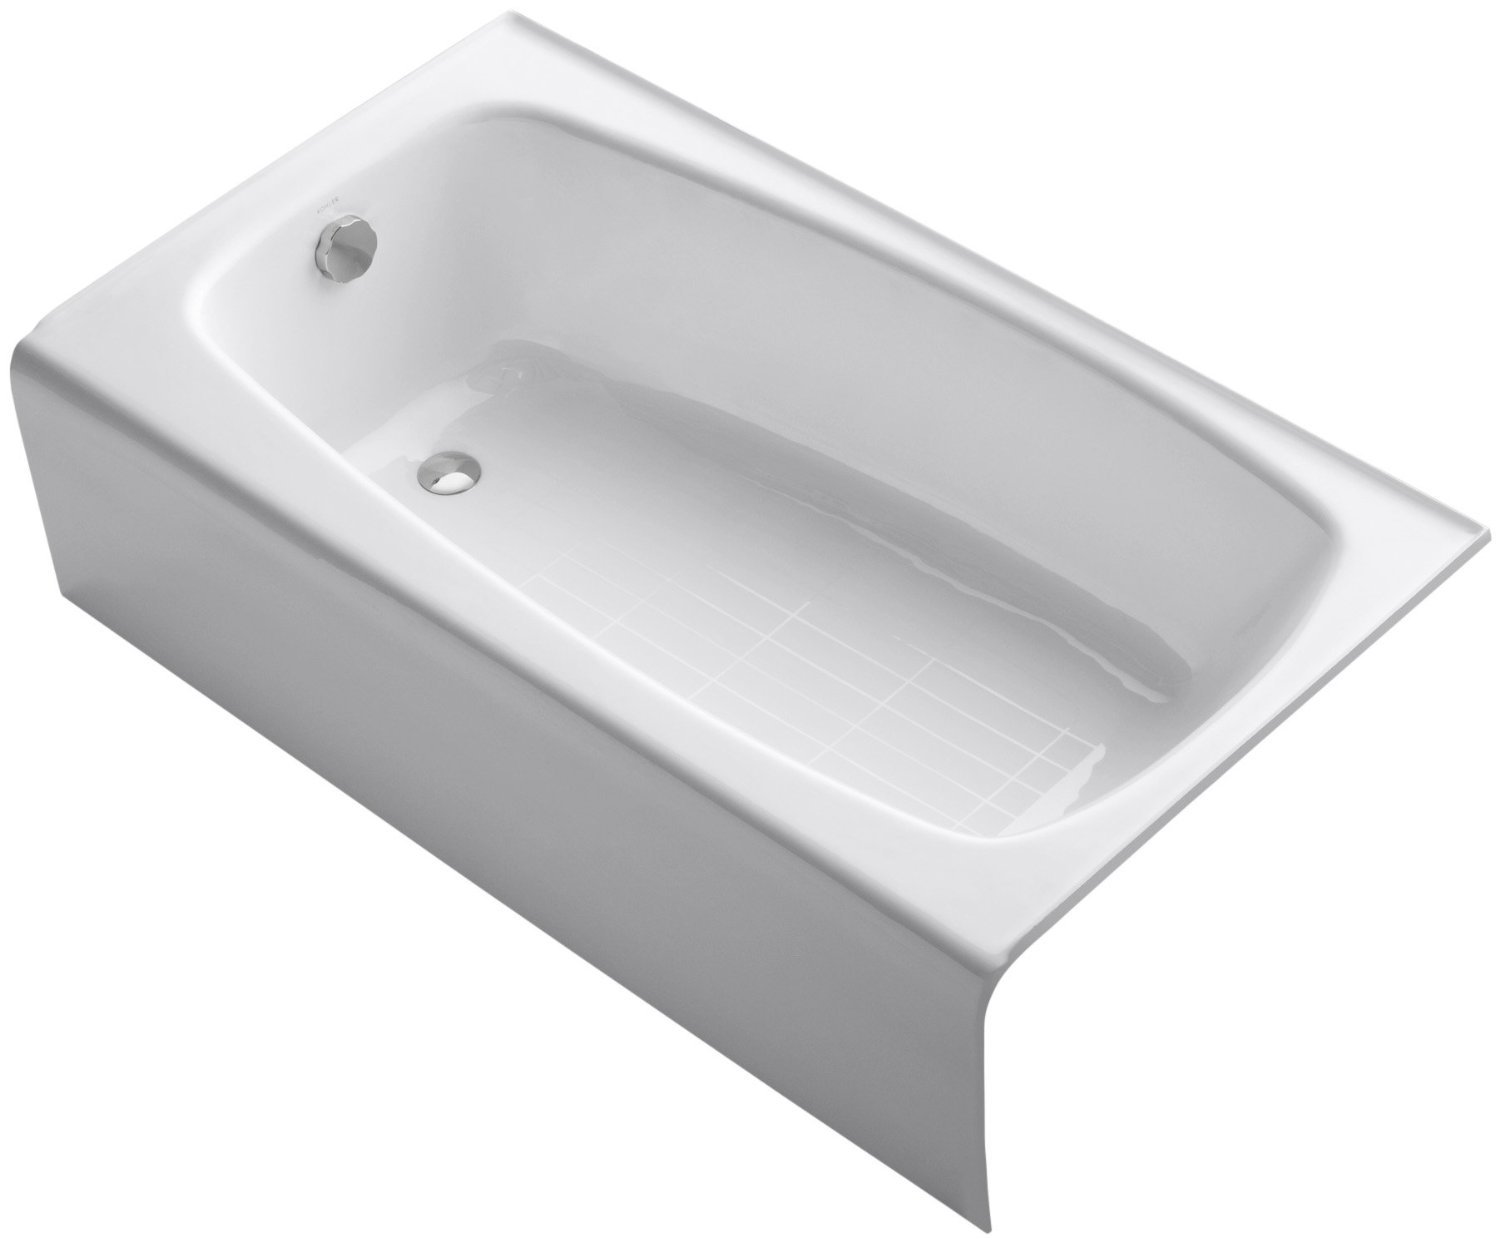 ob melinda 60 inch white acrastone bath tub from american bath factory